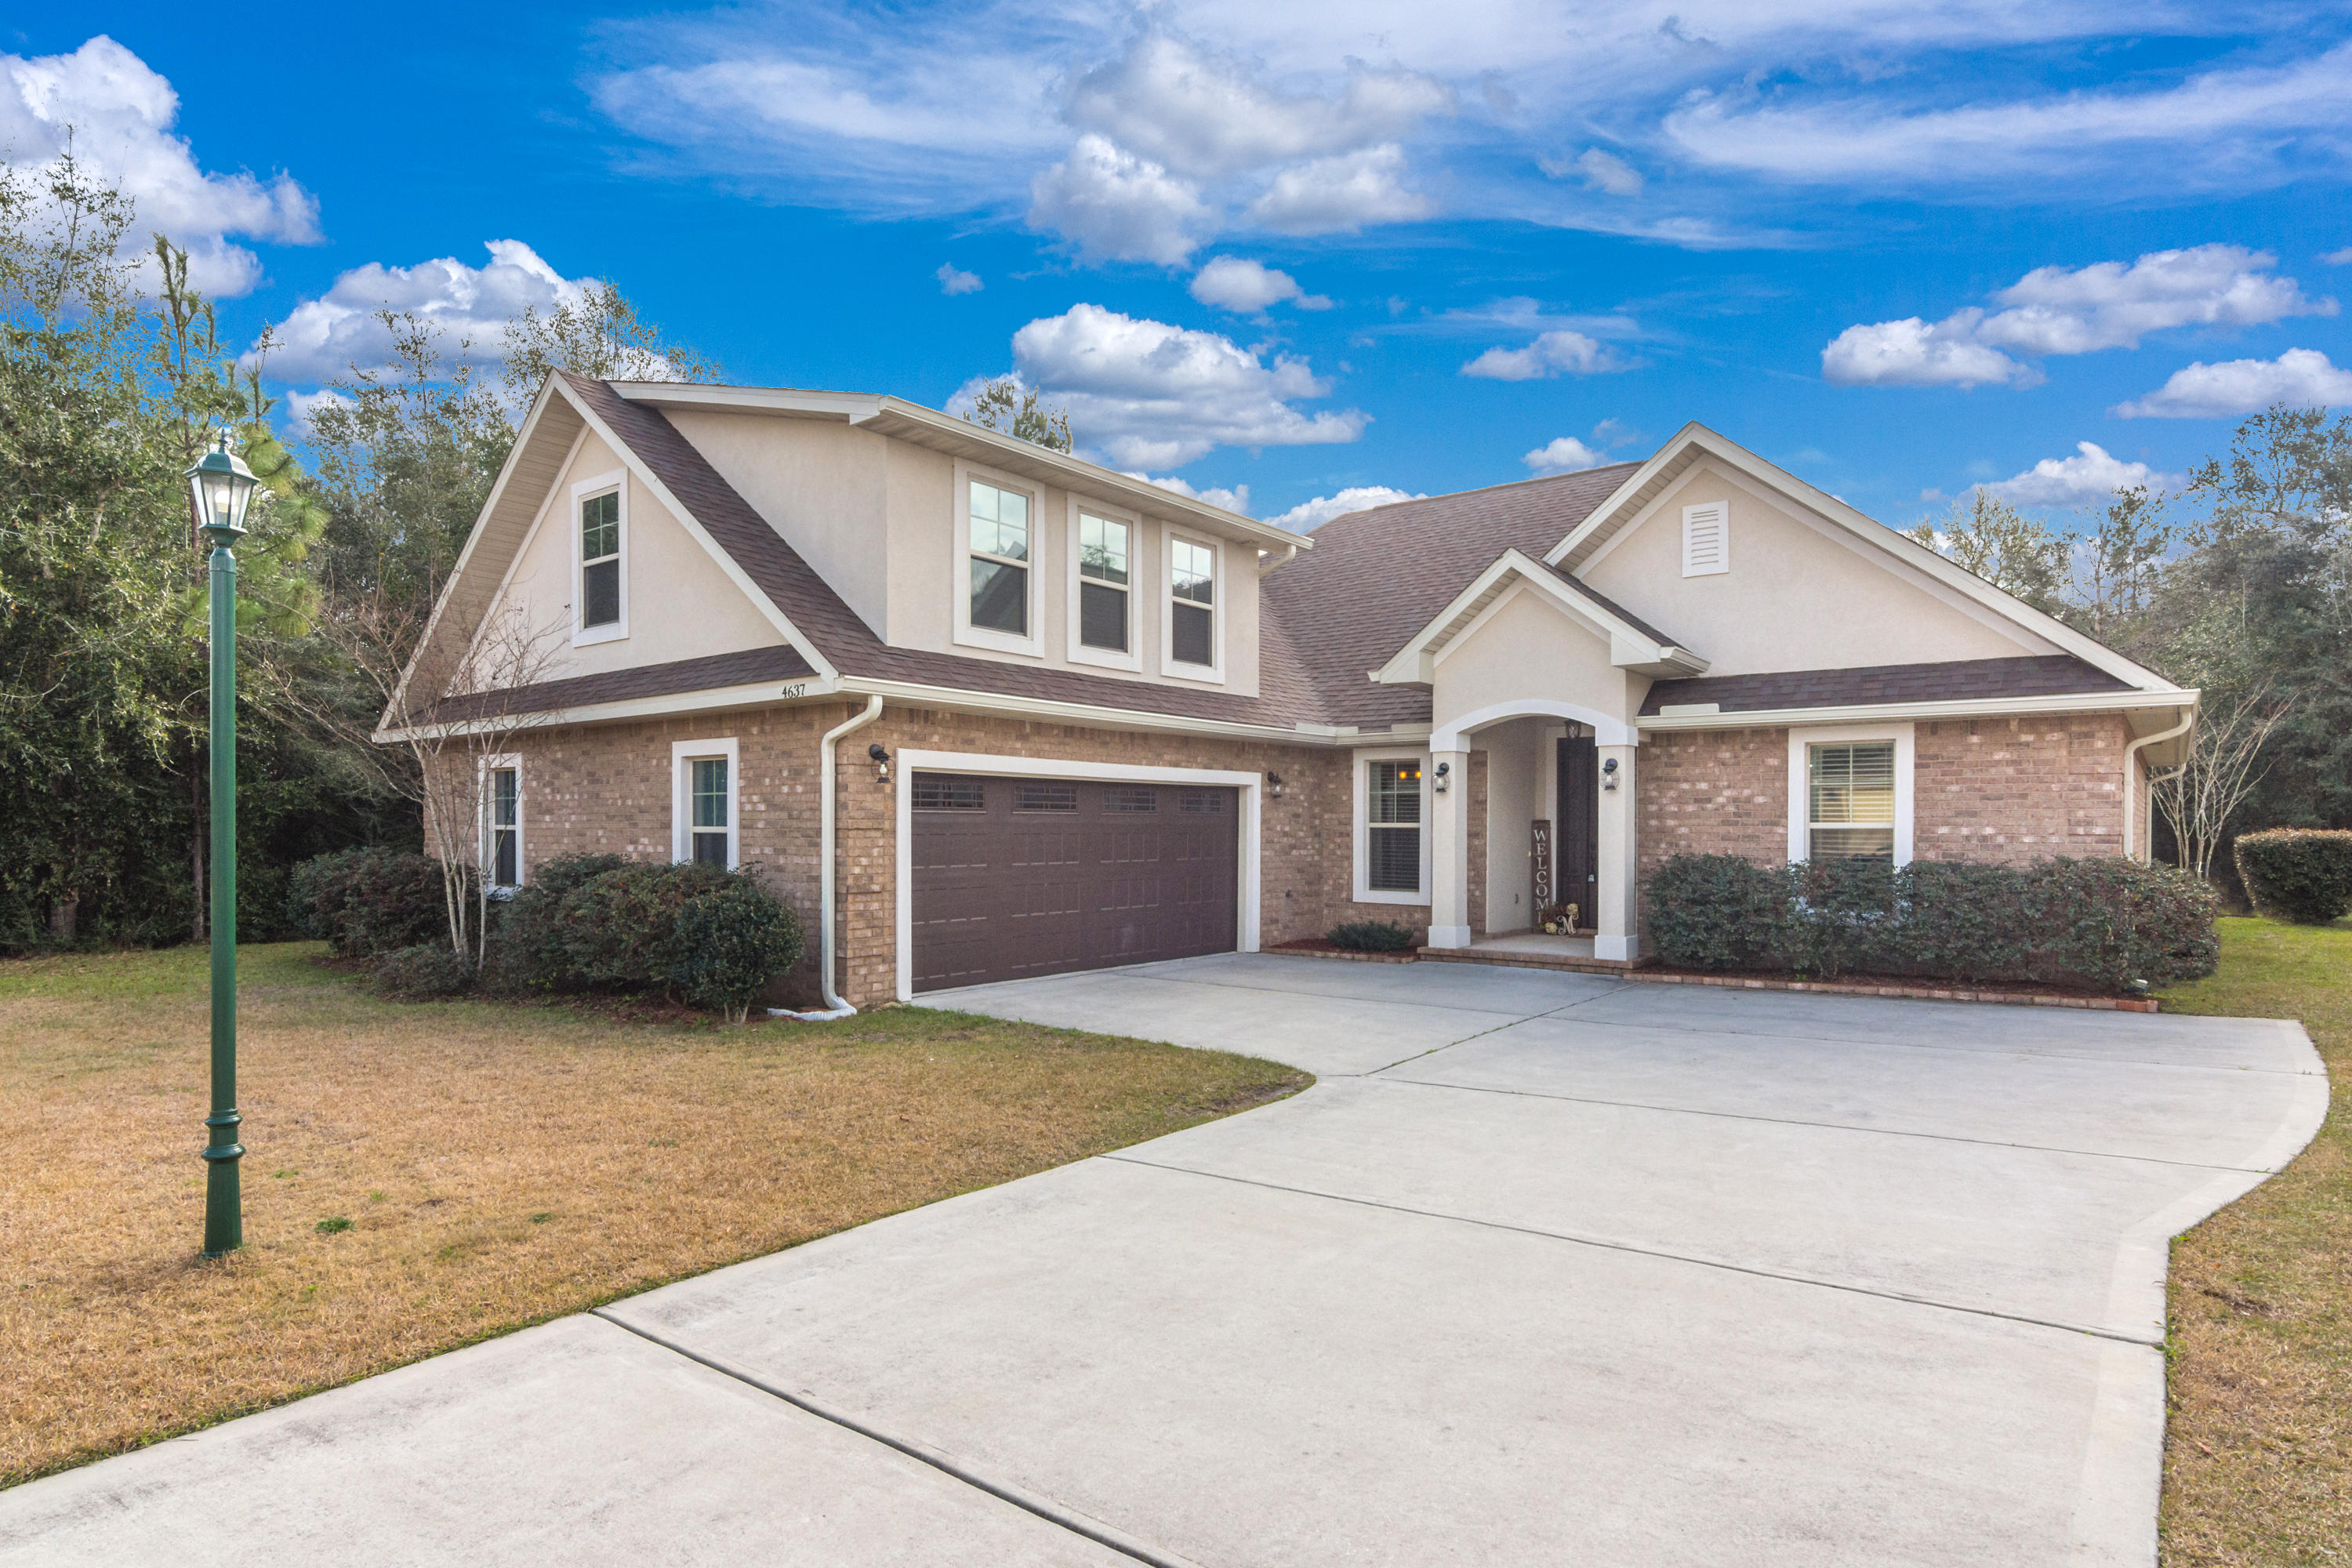 Photo of home for sale at 4637 Chanan, Crestview FL